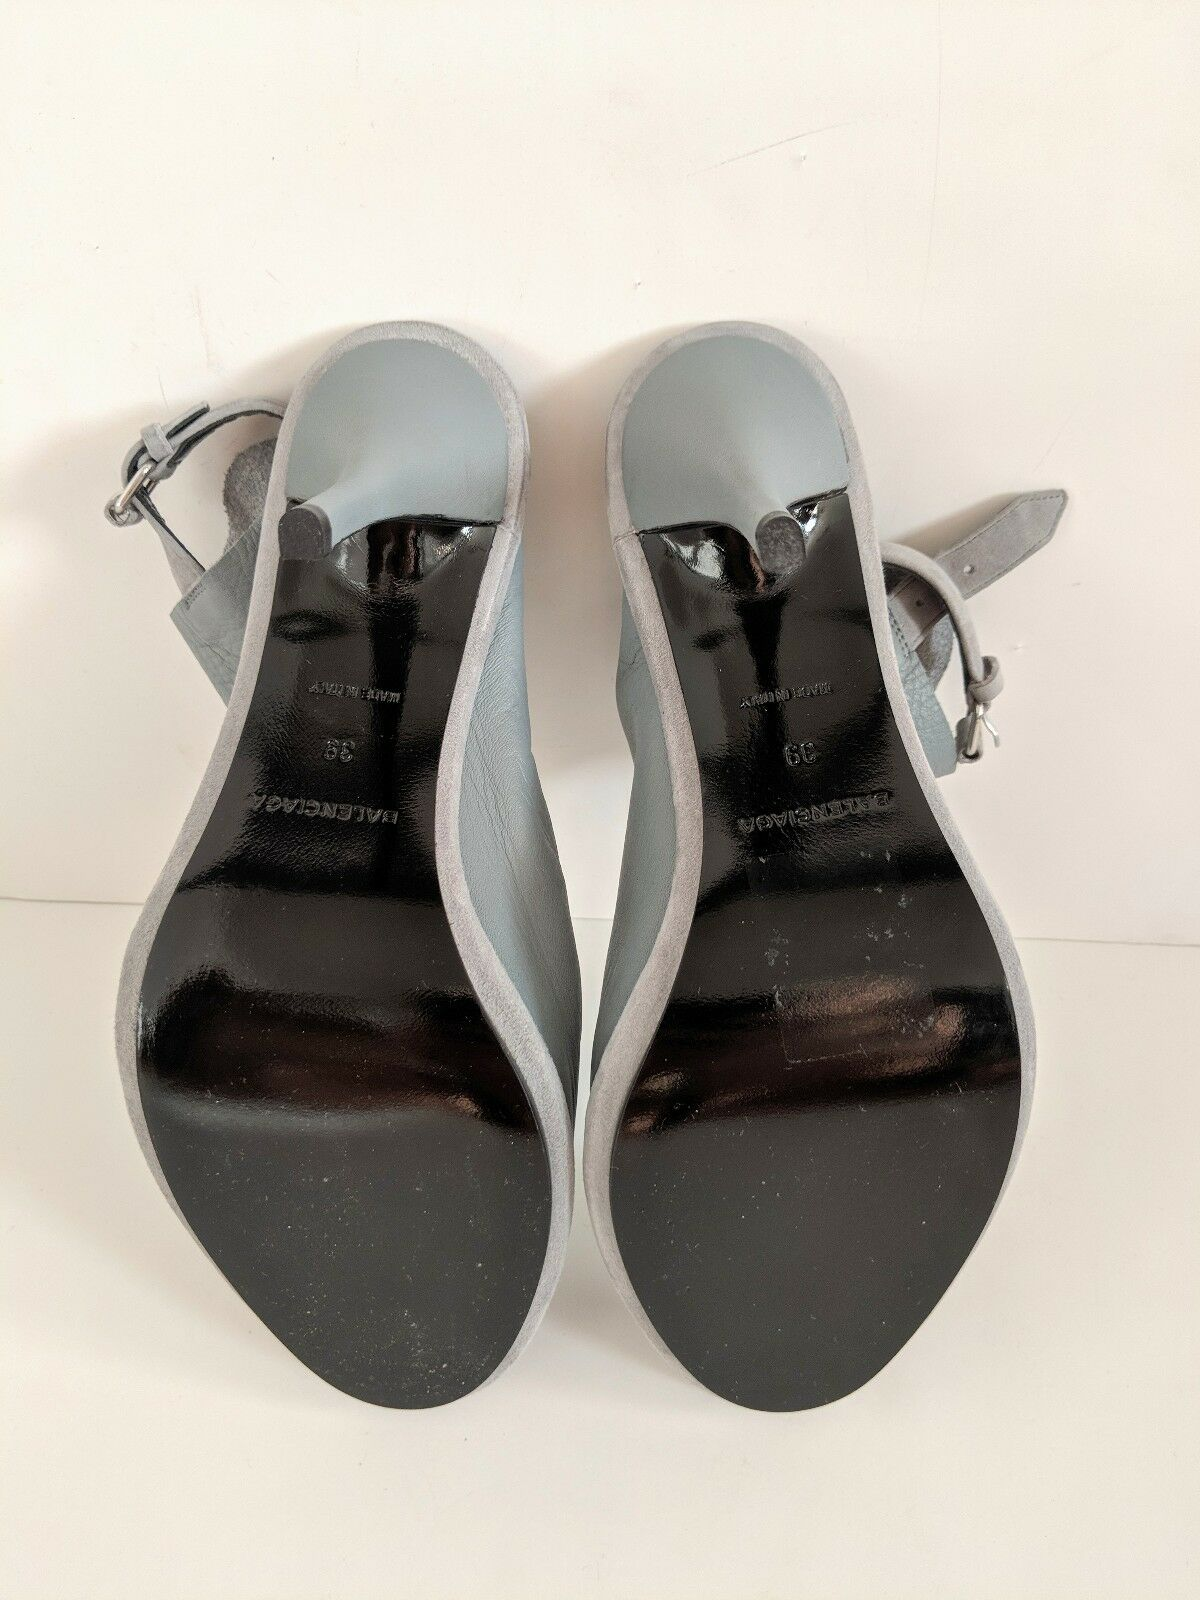 c124fd04e ... Balenciaga Grey Leather Mules Size 39 New New New With Box 87dfd4 ...